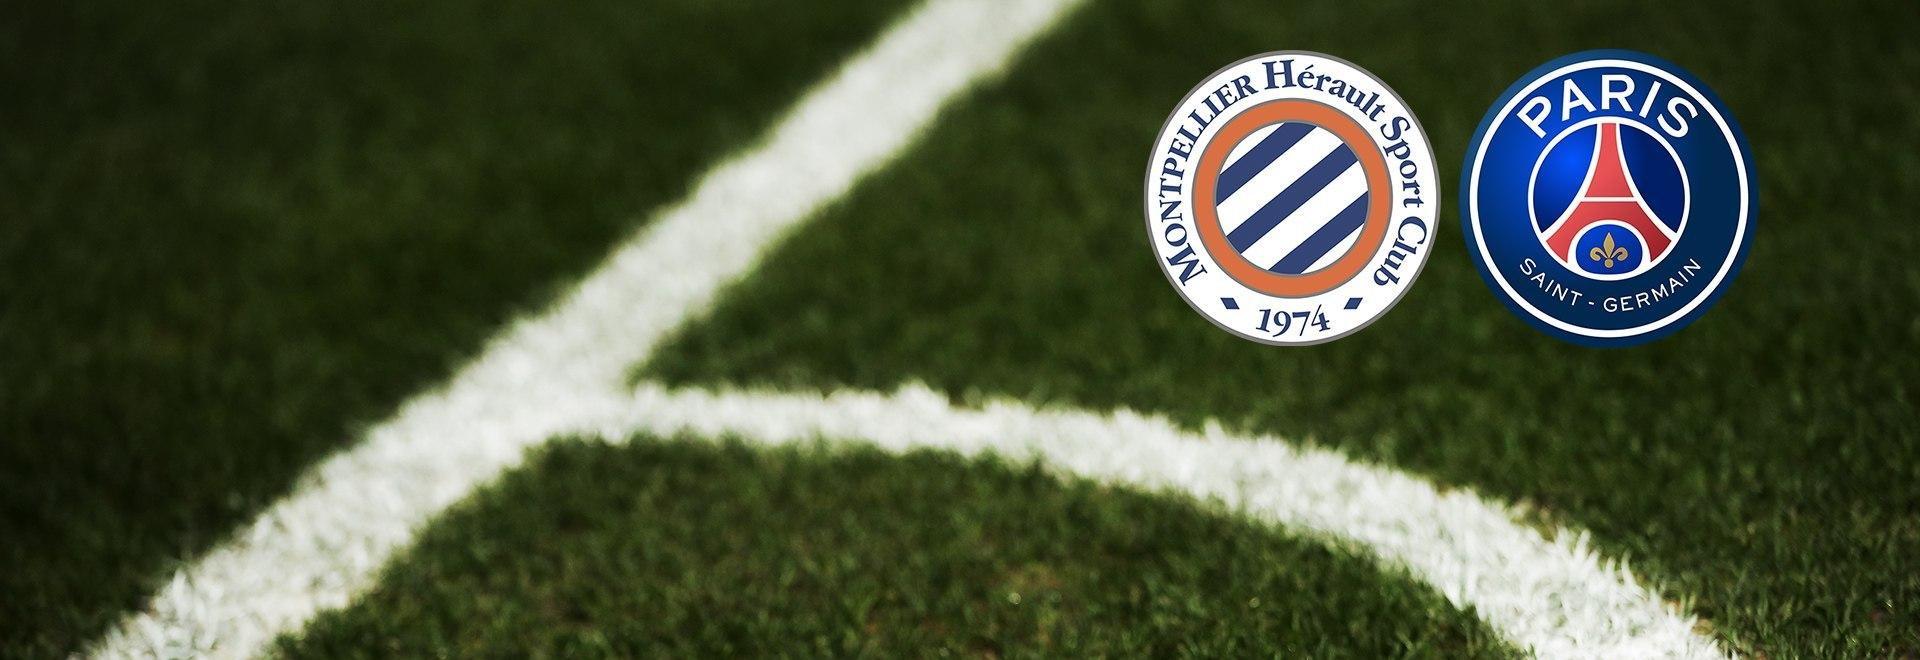 Montpellier - PSG. 17a g.